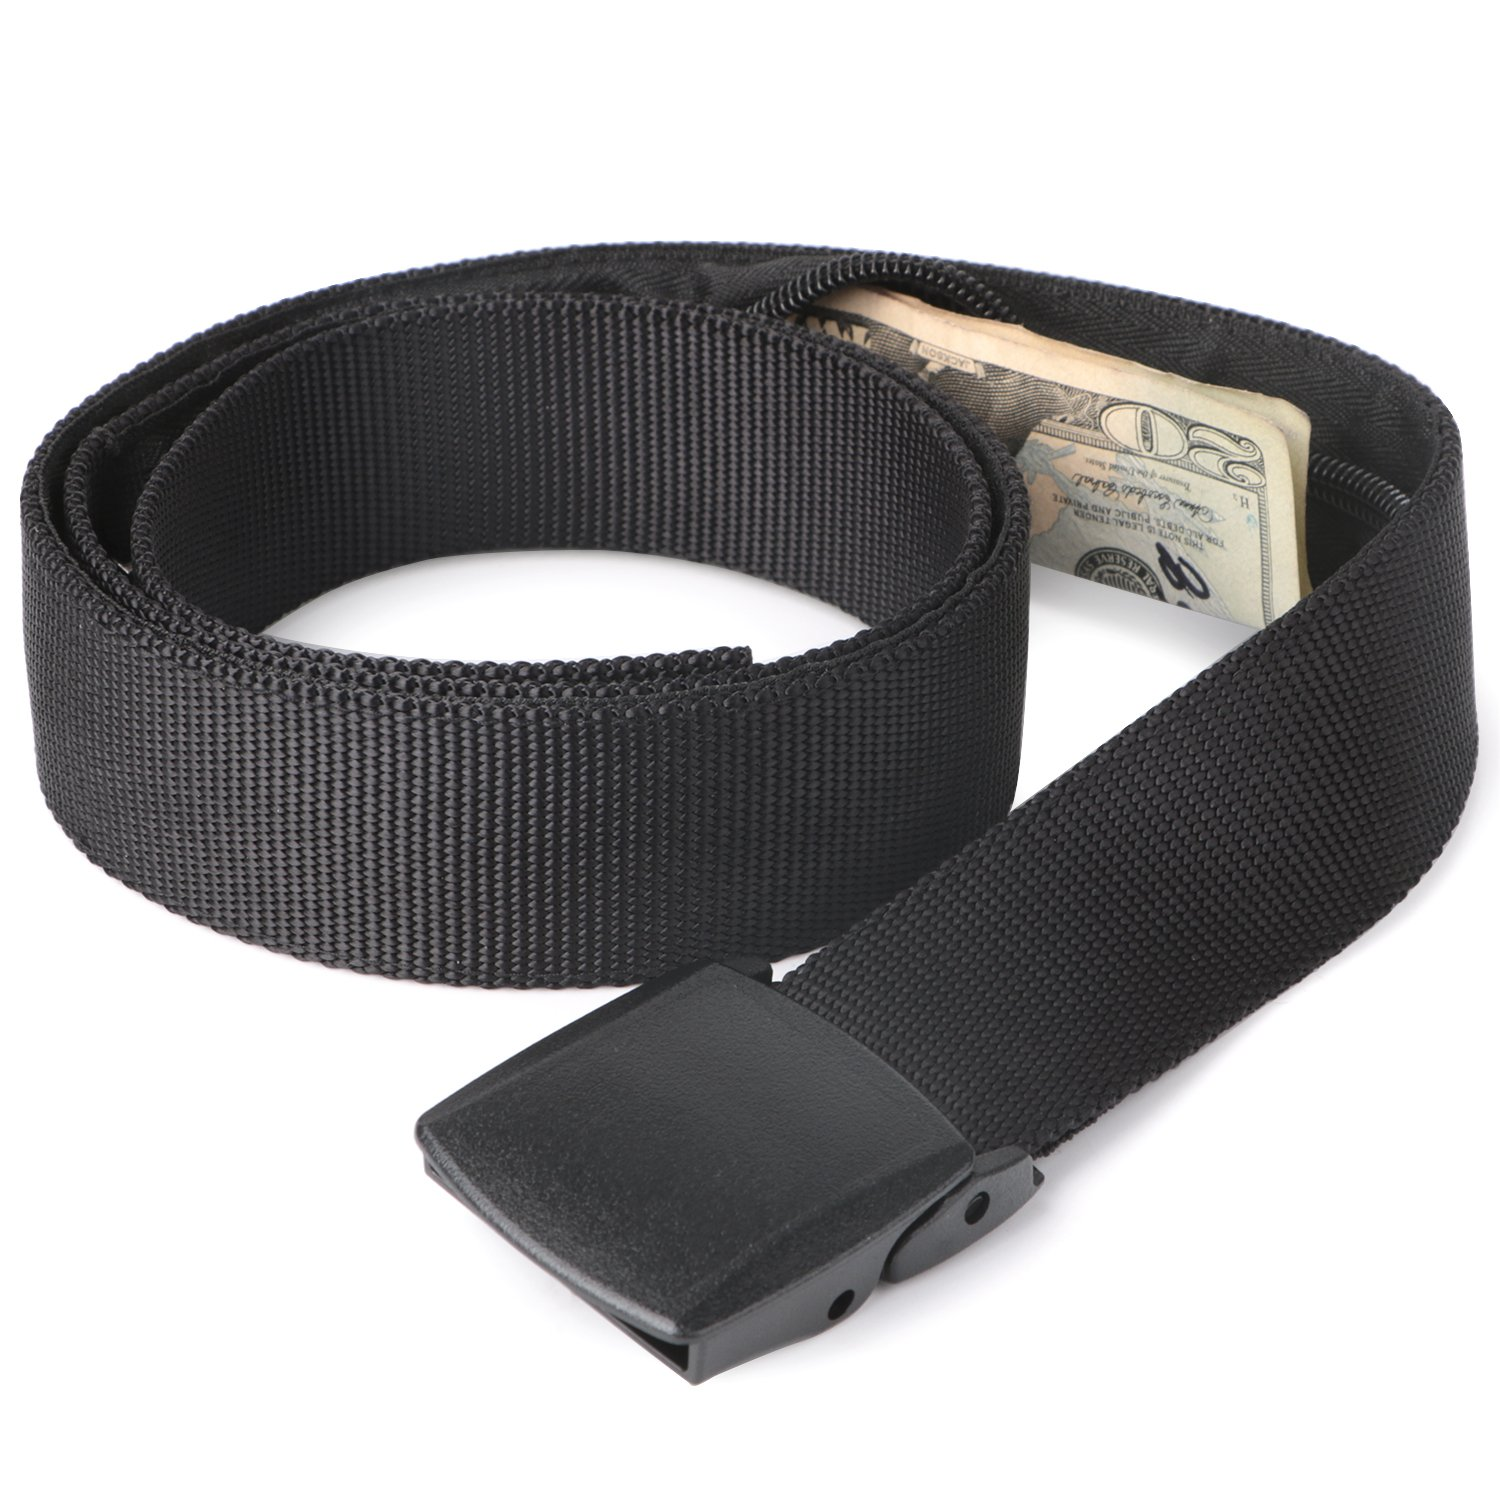 Travel Security Money Belt with Hidden Money Pocket - Cashsafe Anti-Theft Wallet Unisex Nickel free Nylon Belt by JASGOOD (Style 1-1.5'' width-Money belt, 1 Black-fit pant size 41-50'')